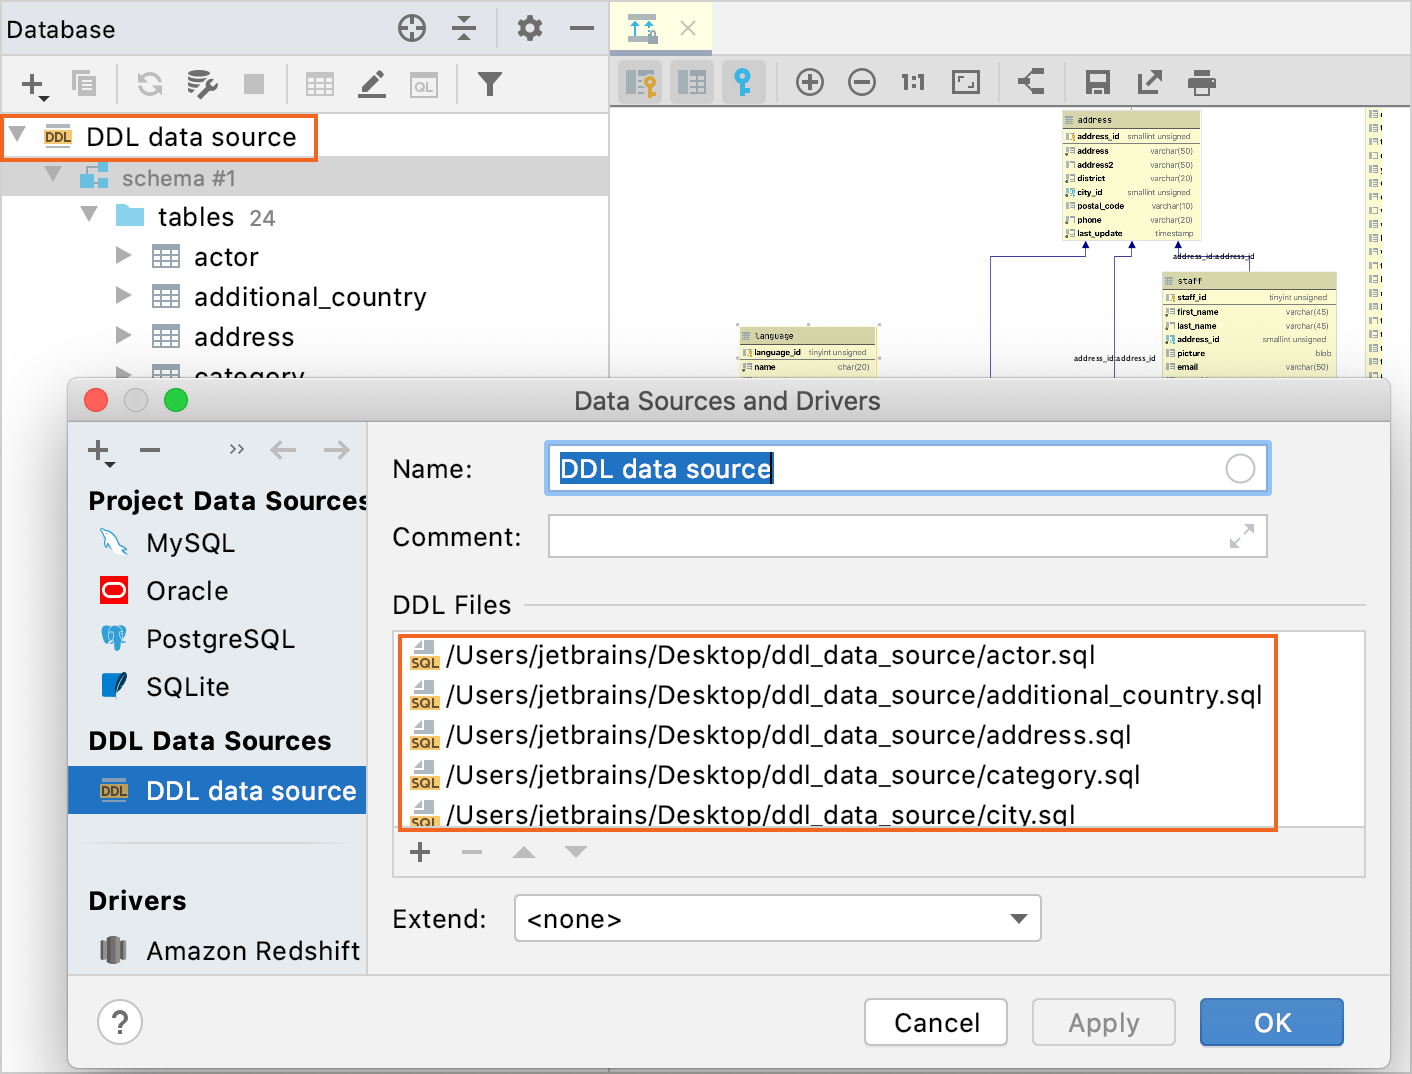 Create a DDL data source